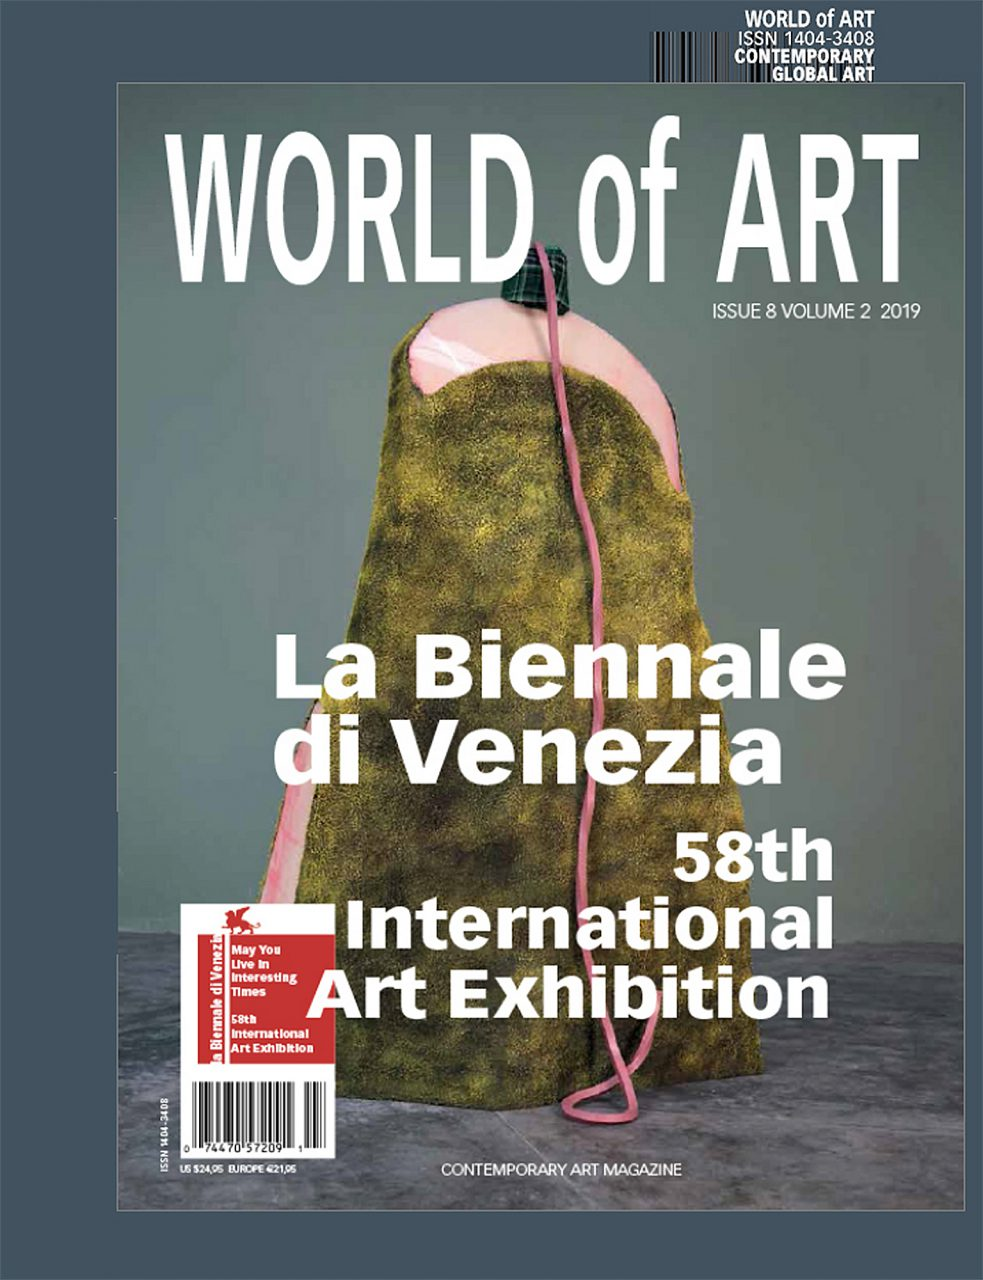 WORLD OF ART La Biennale di Venezia, Publication image